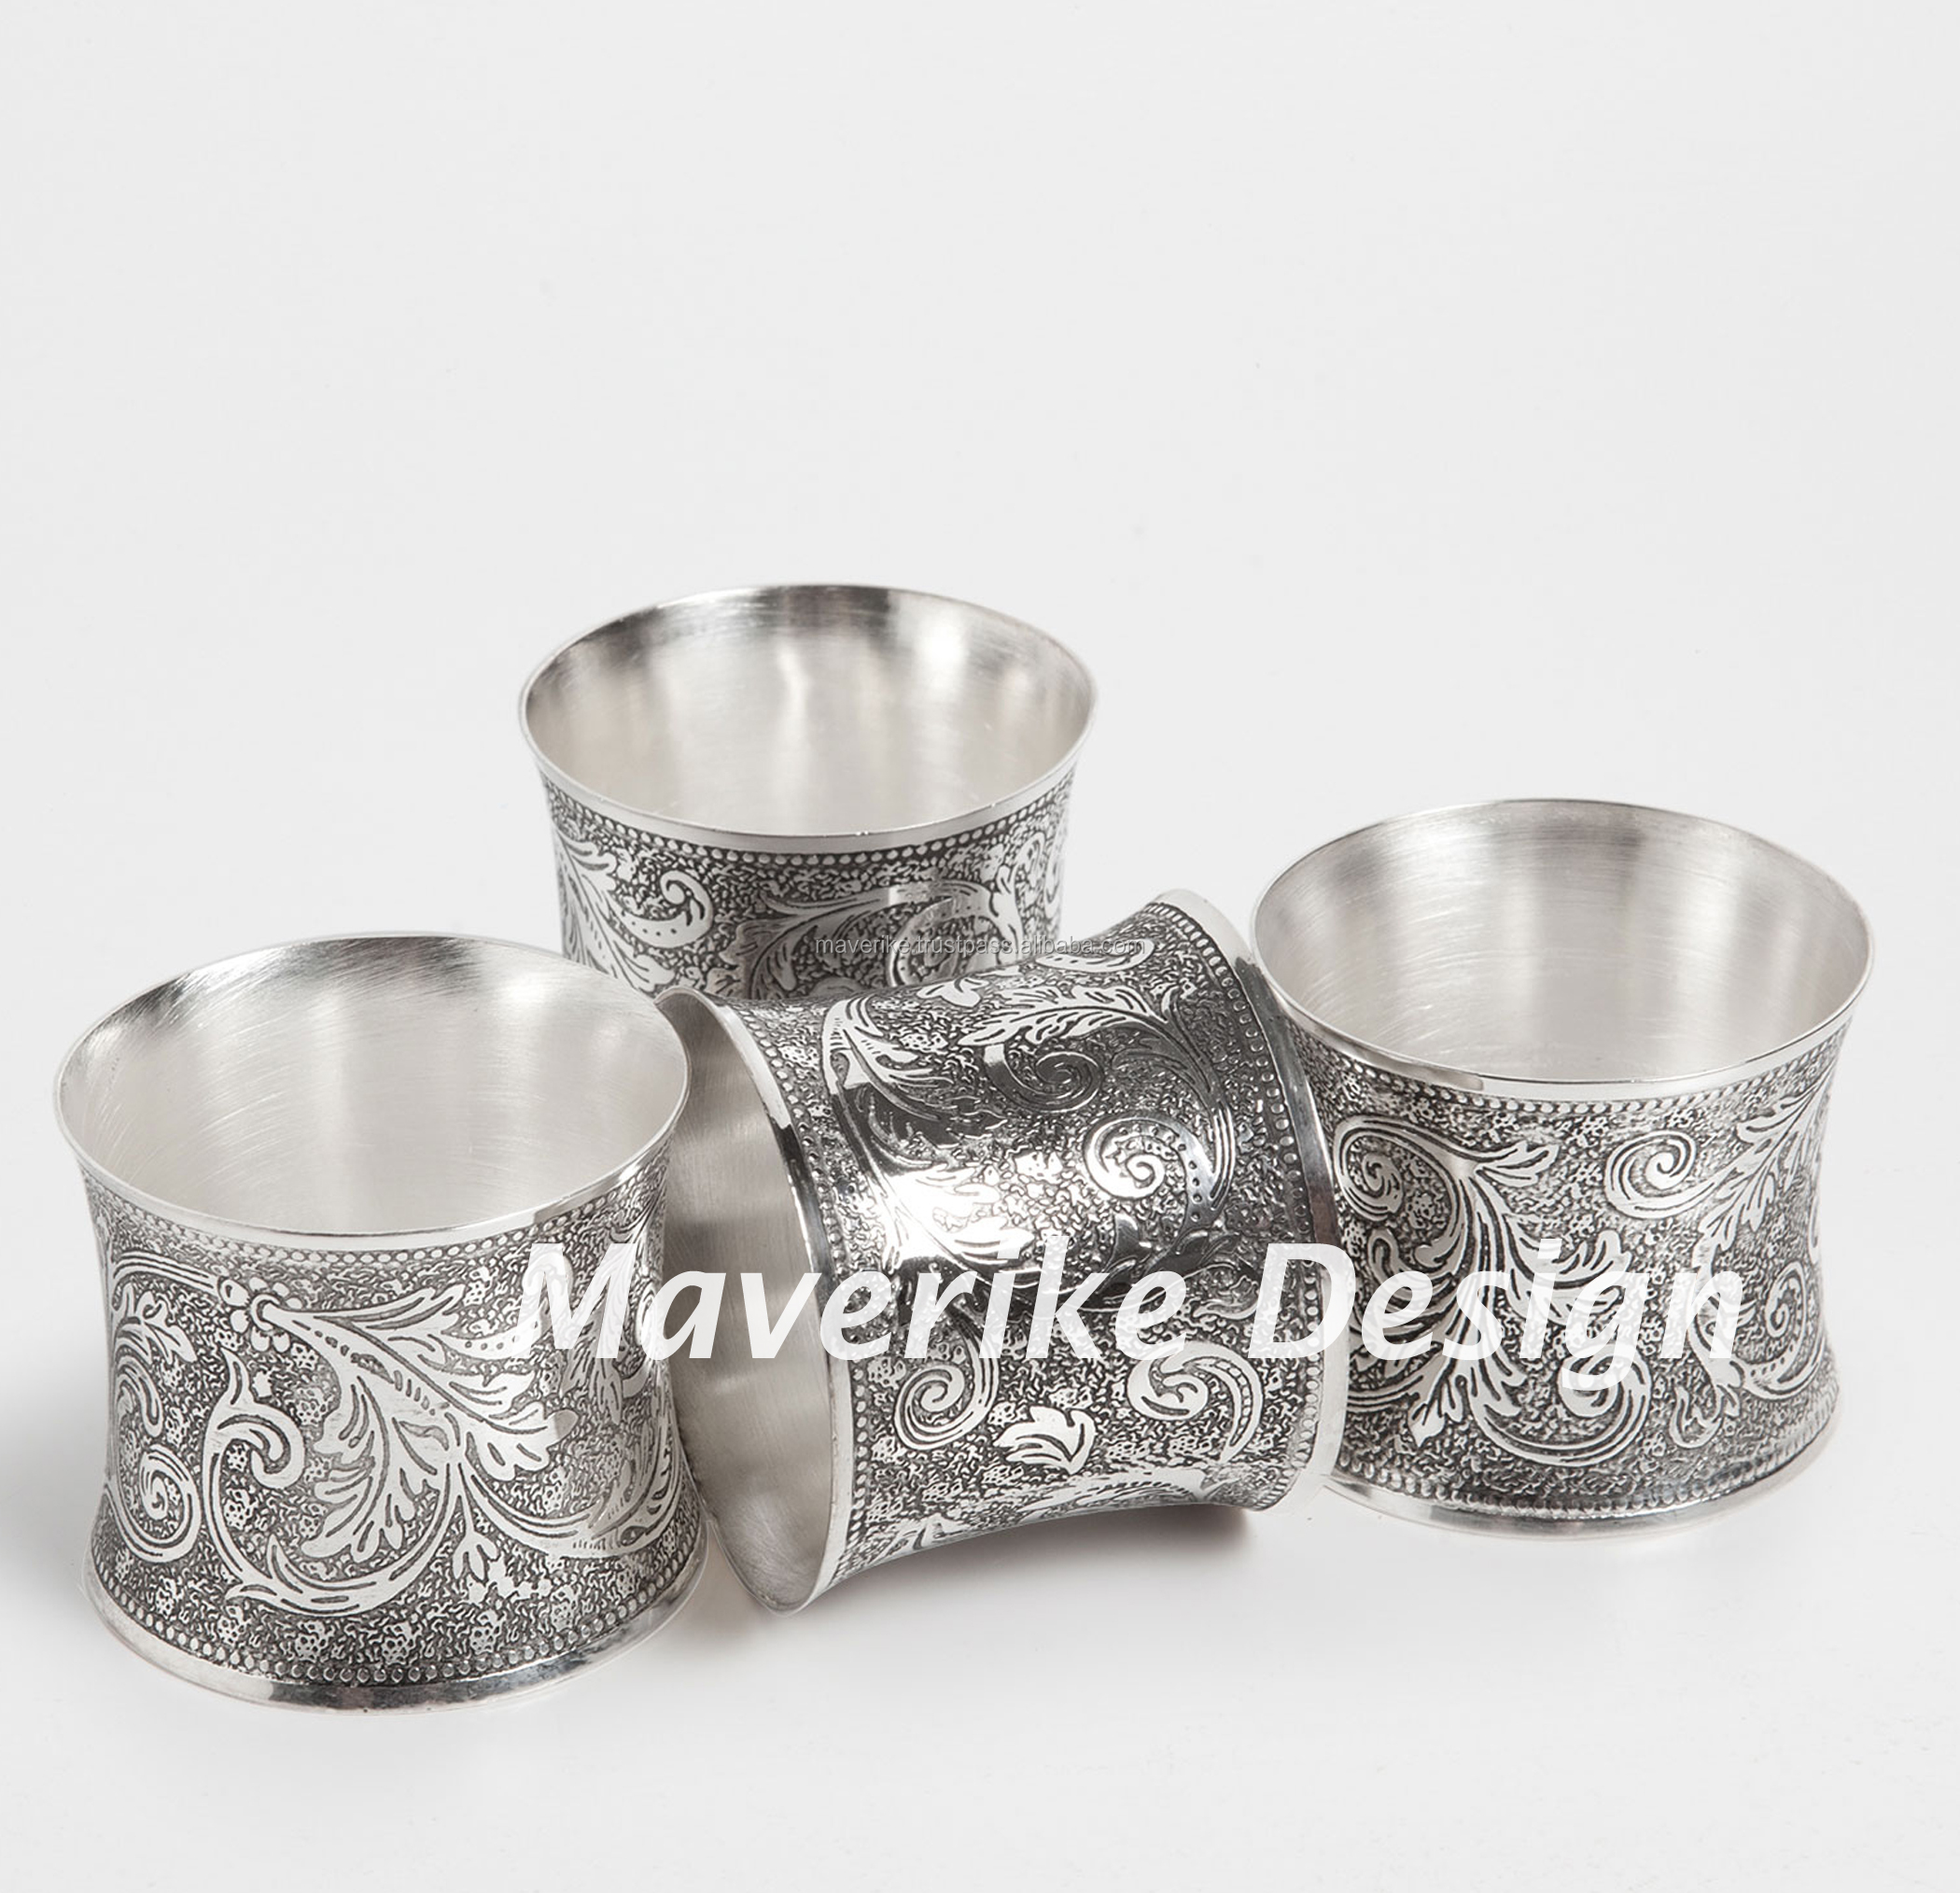 Martellato napkin holder wedding anello